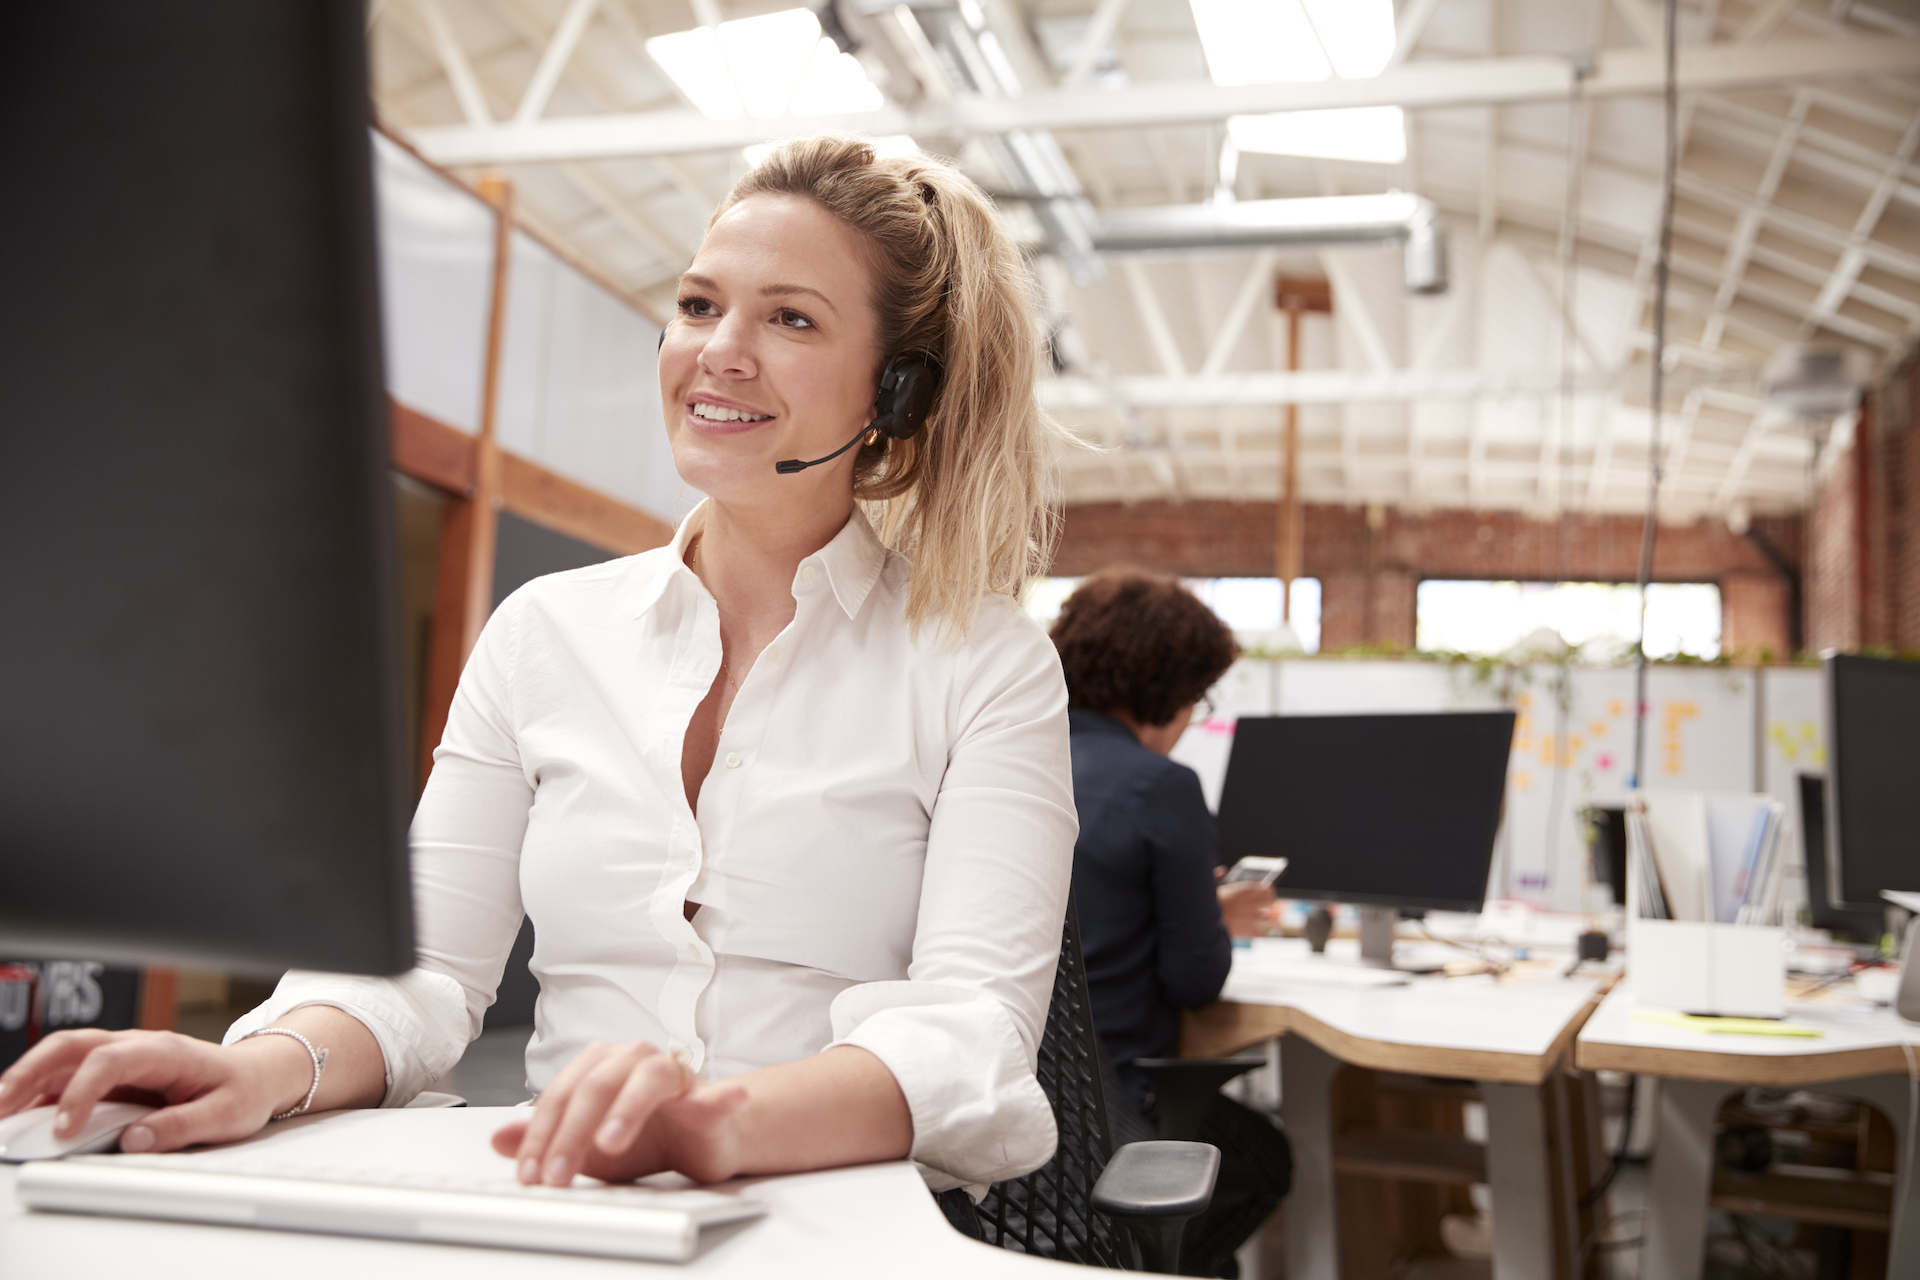 Transform your Workplace with Cloud Business Phone Systems